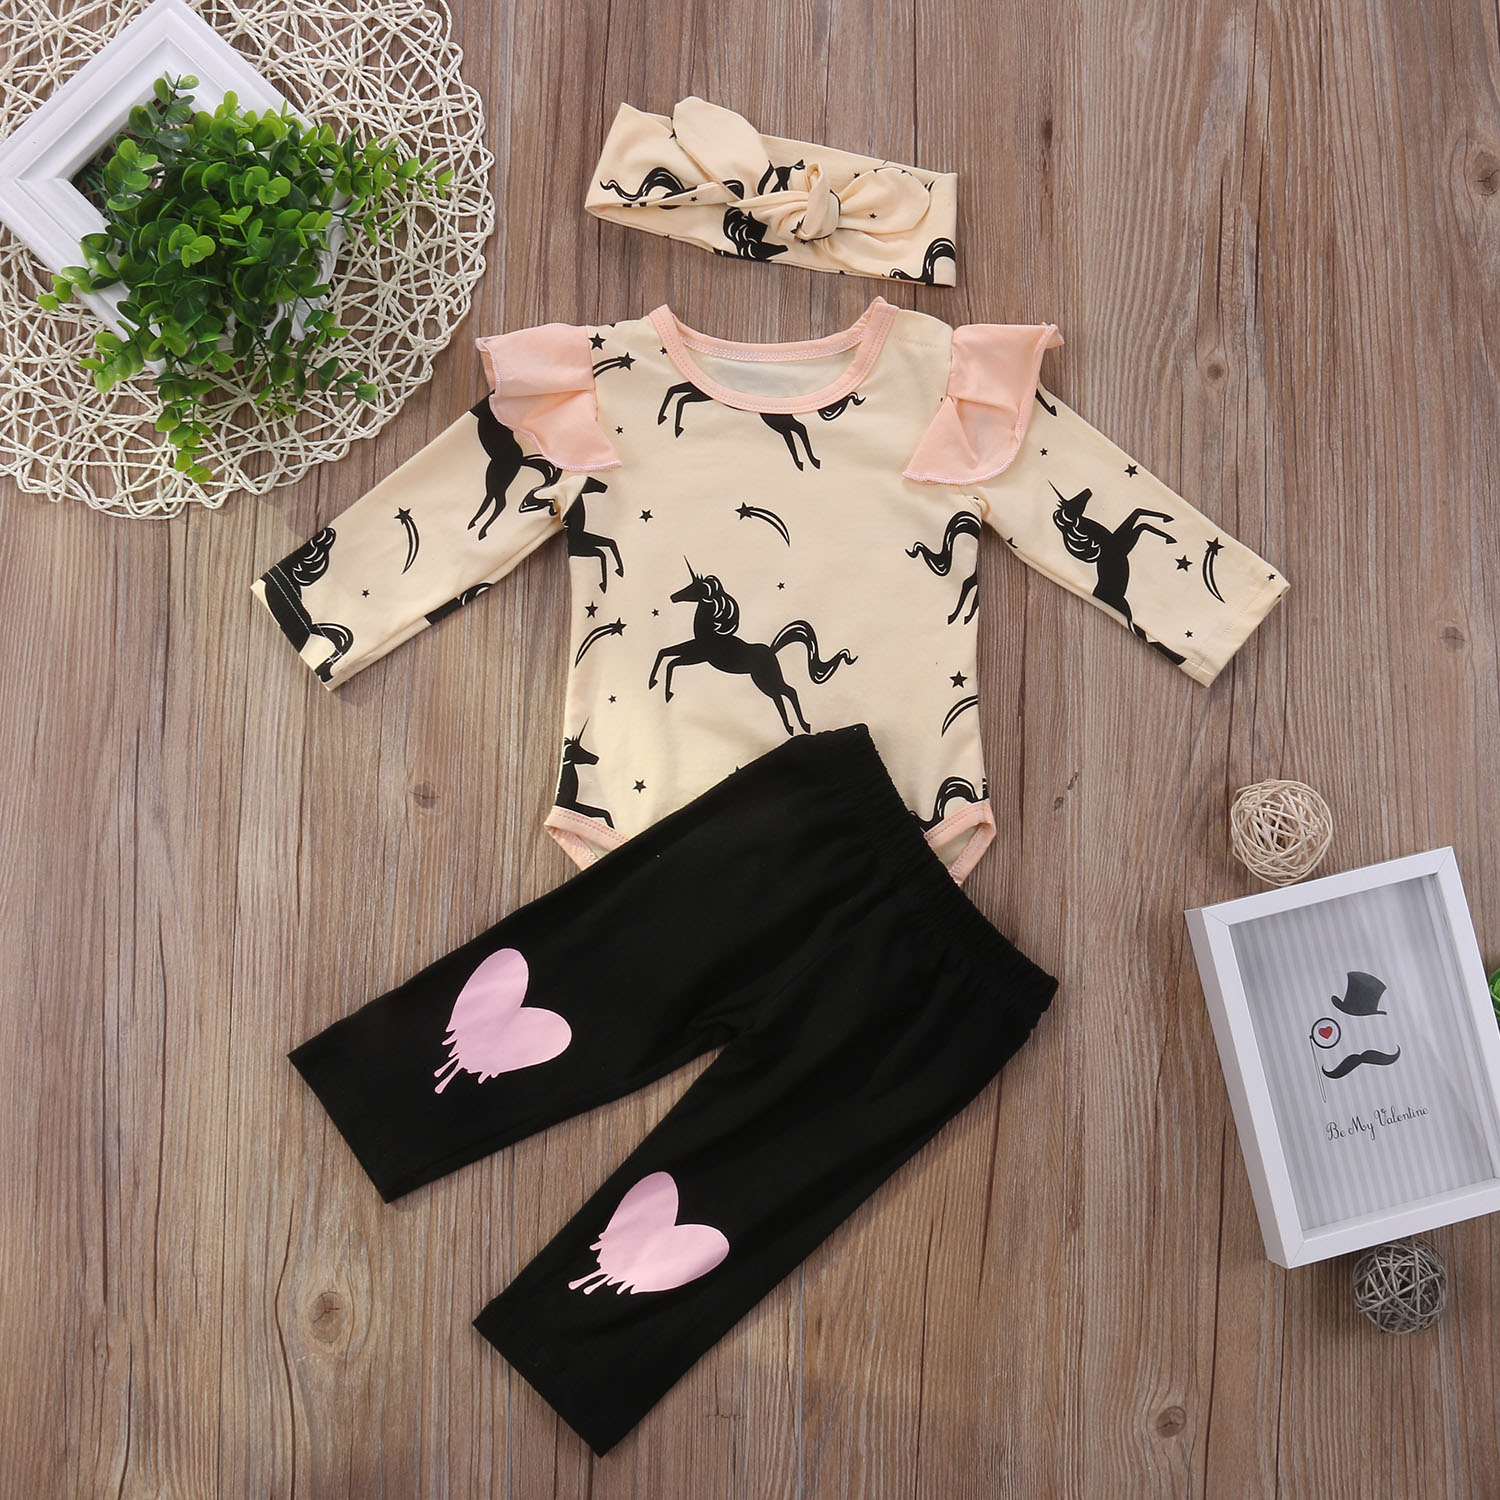 Cute 3PCS Set Newborn Kids Baby Girl Clothes Cotton Pony Romper Tops Long Pants Headbands Outfits